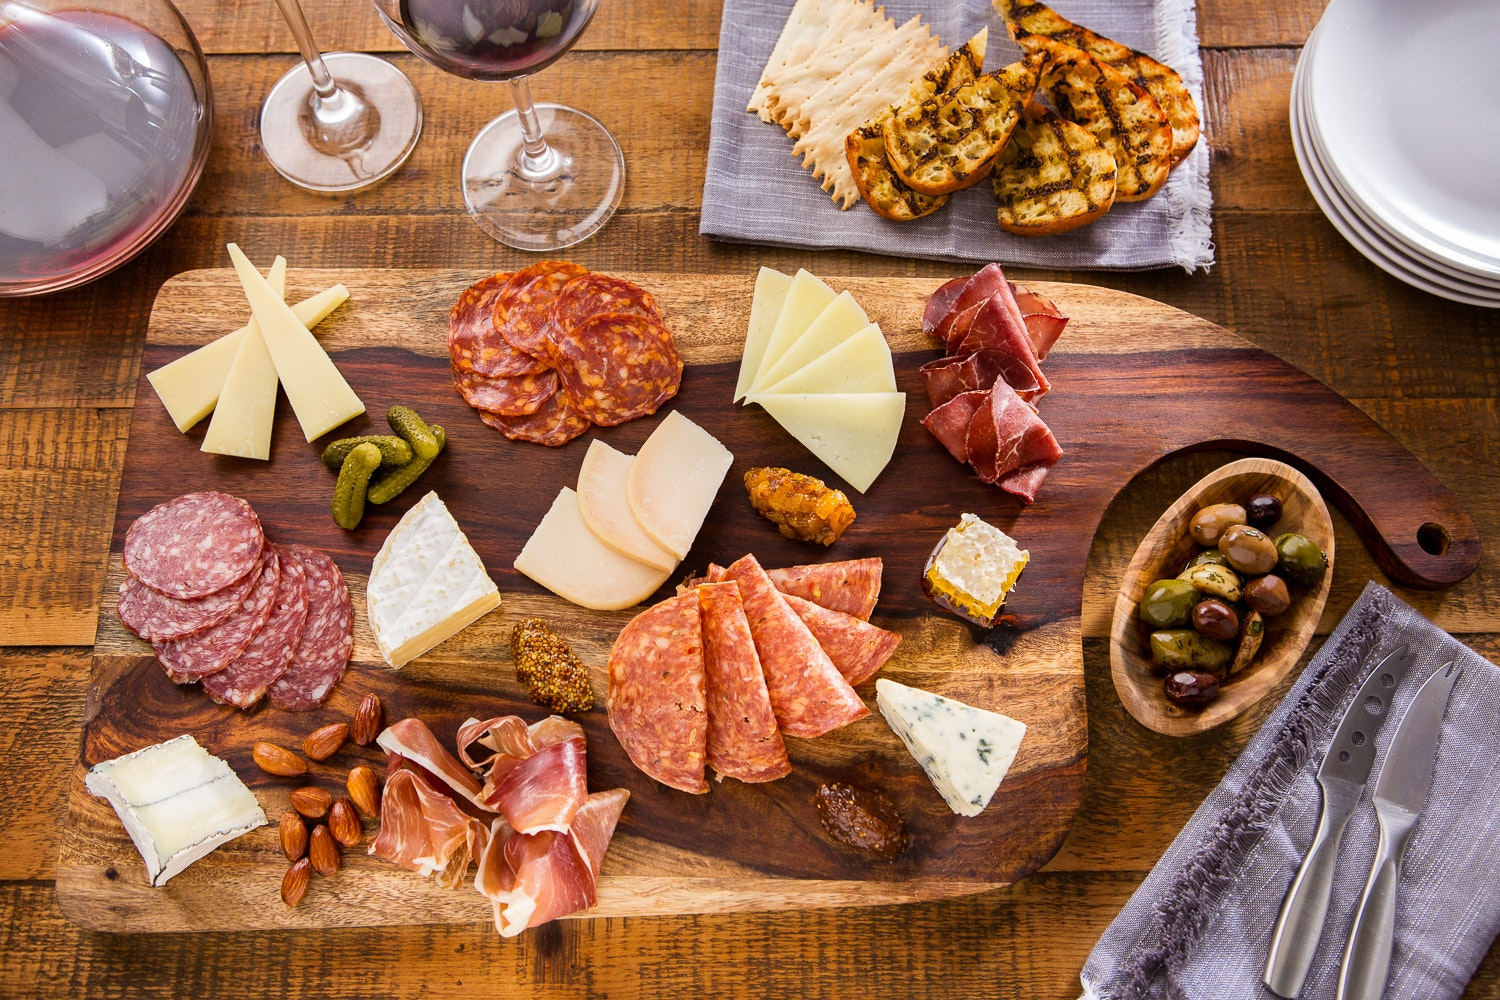 If you find yourself a Wine Bar George, don't leave without ordering the Big Board—a selection of six cheeses, five meats, and condiments such as pickles, almonds, fig spread, and honey.